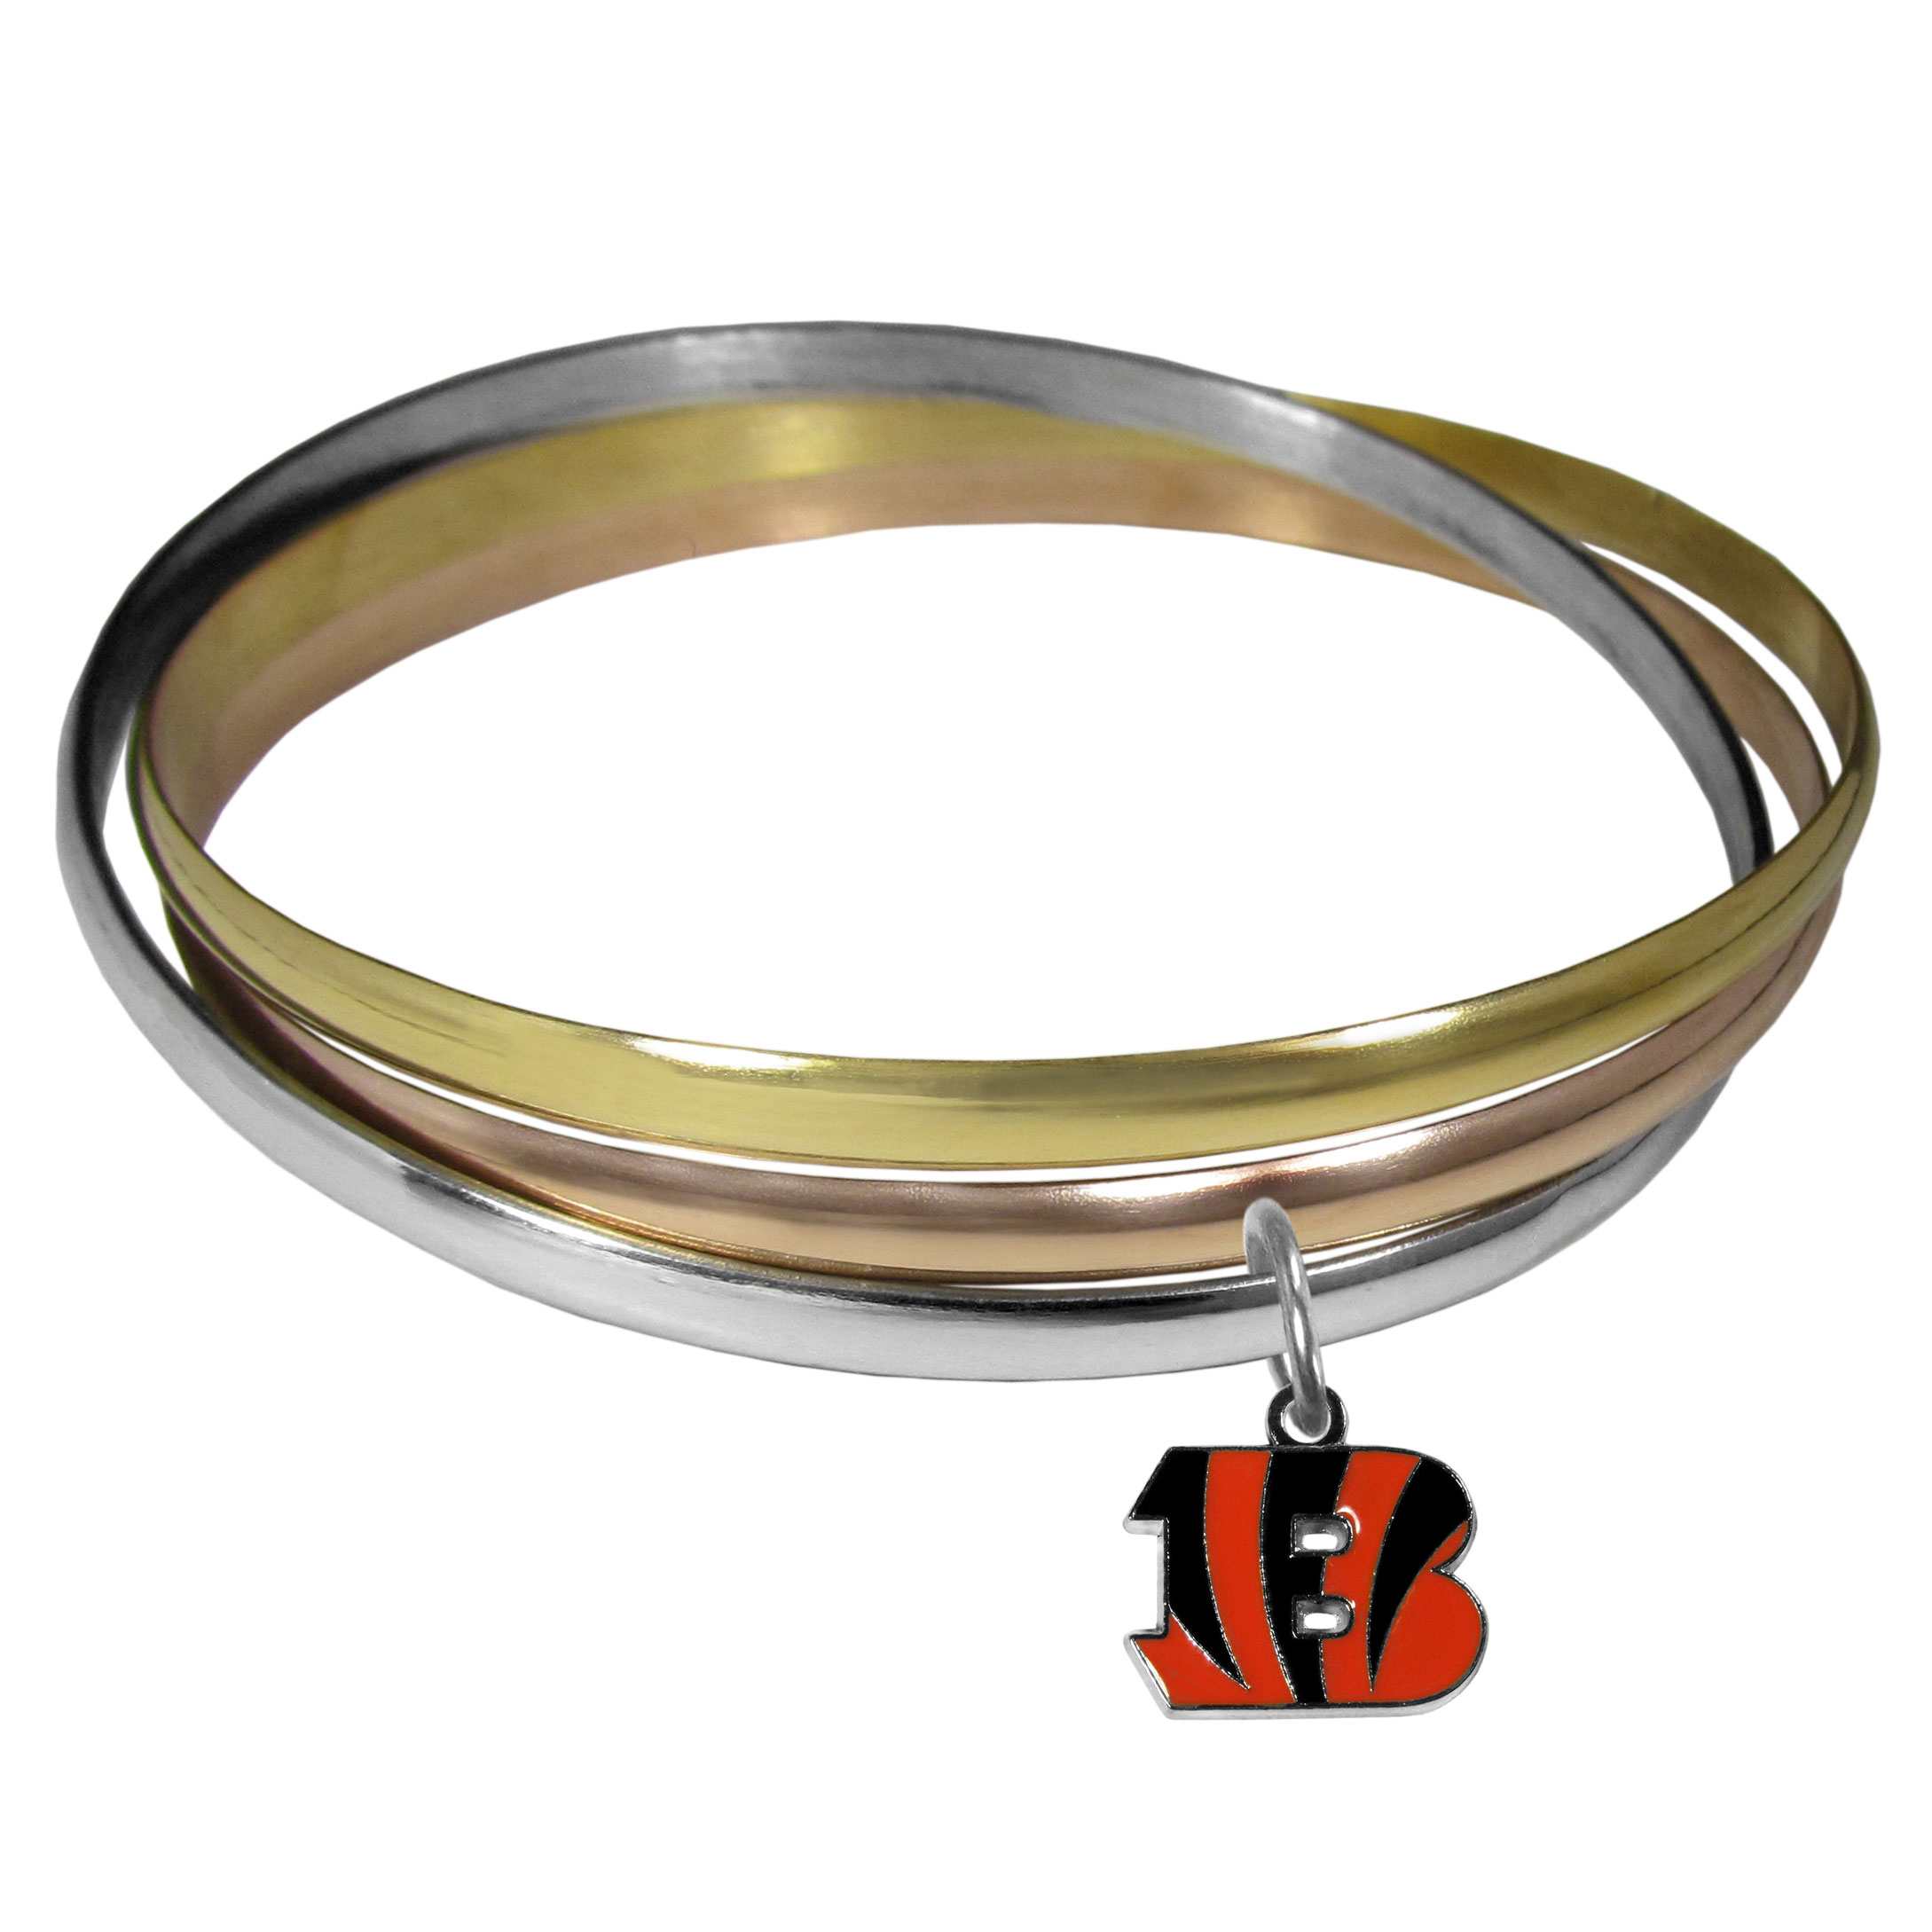 Cincinnati Bengals Tri-color Bangle Bracelet - These beautiful bangles come in a interlocking style and feature a fully cast Cincinnati Bengals charm with enameled team colors. The bracelet has a silver toned bangle, gold tone bangle and brass toned bangle.